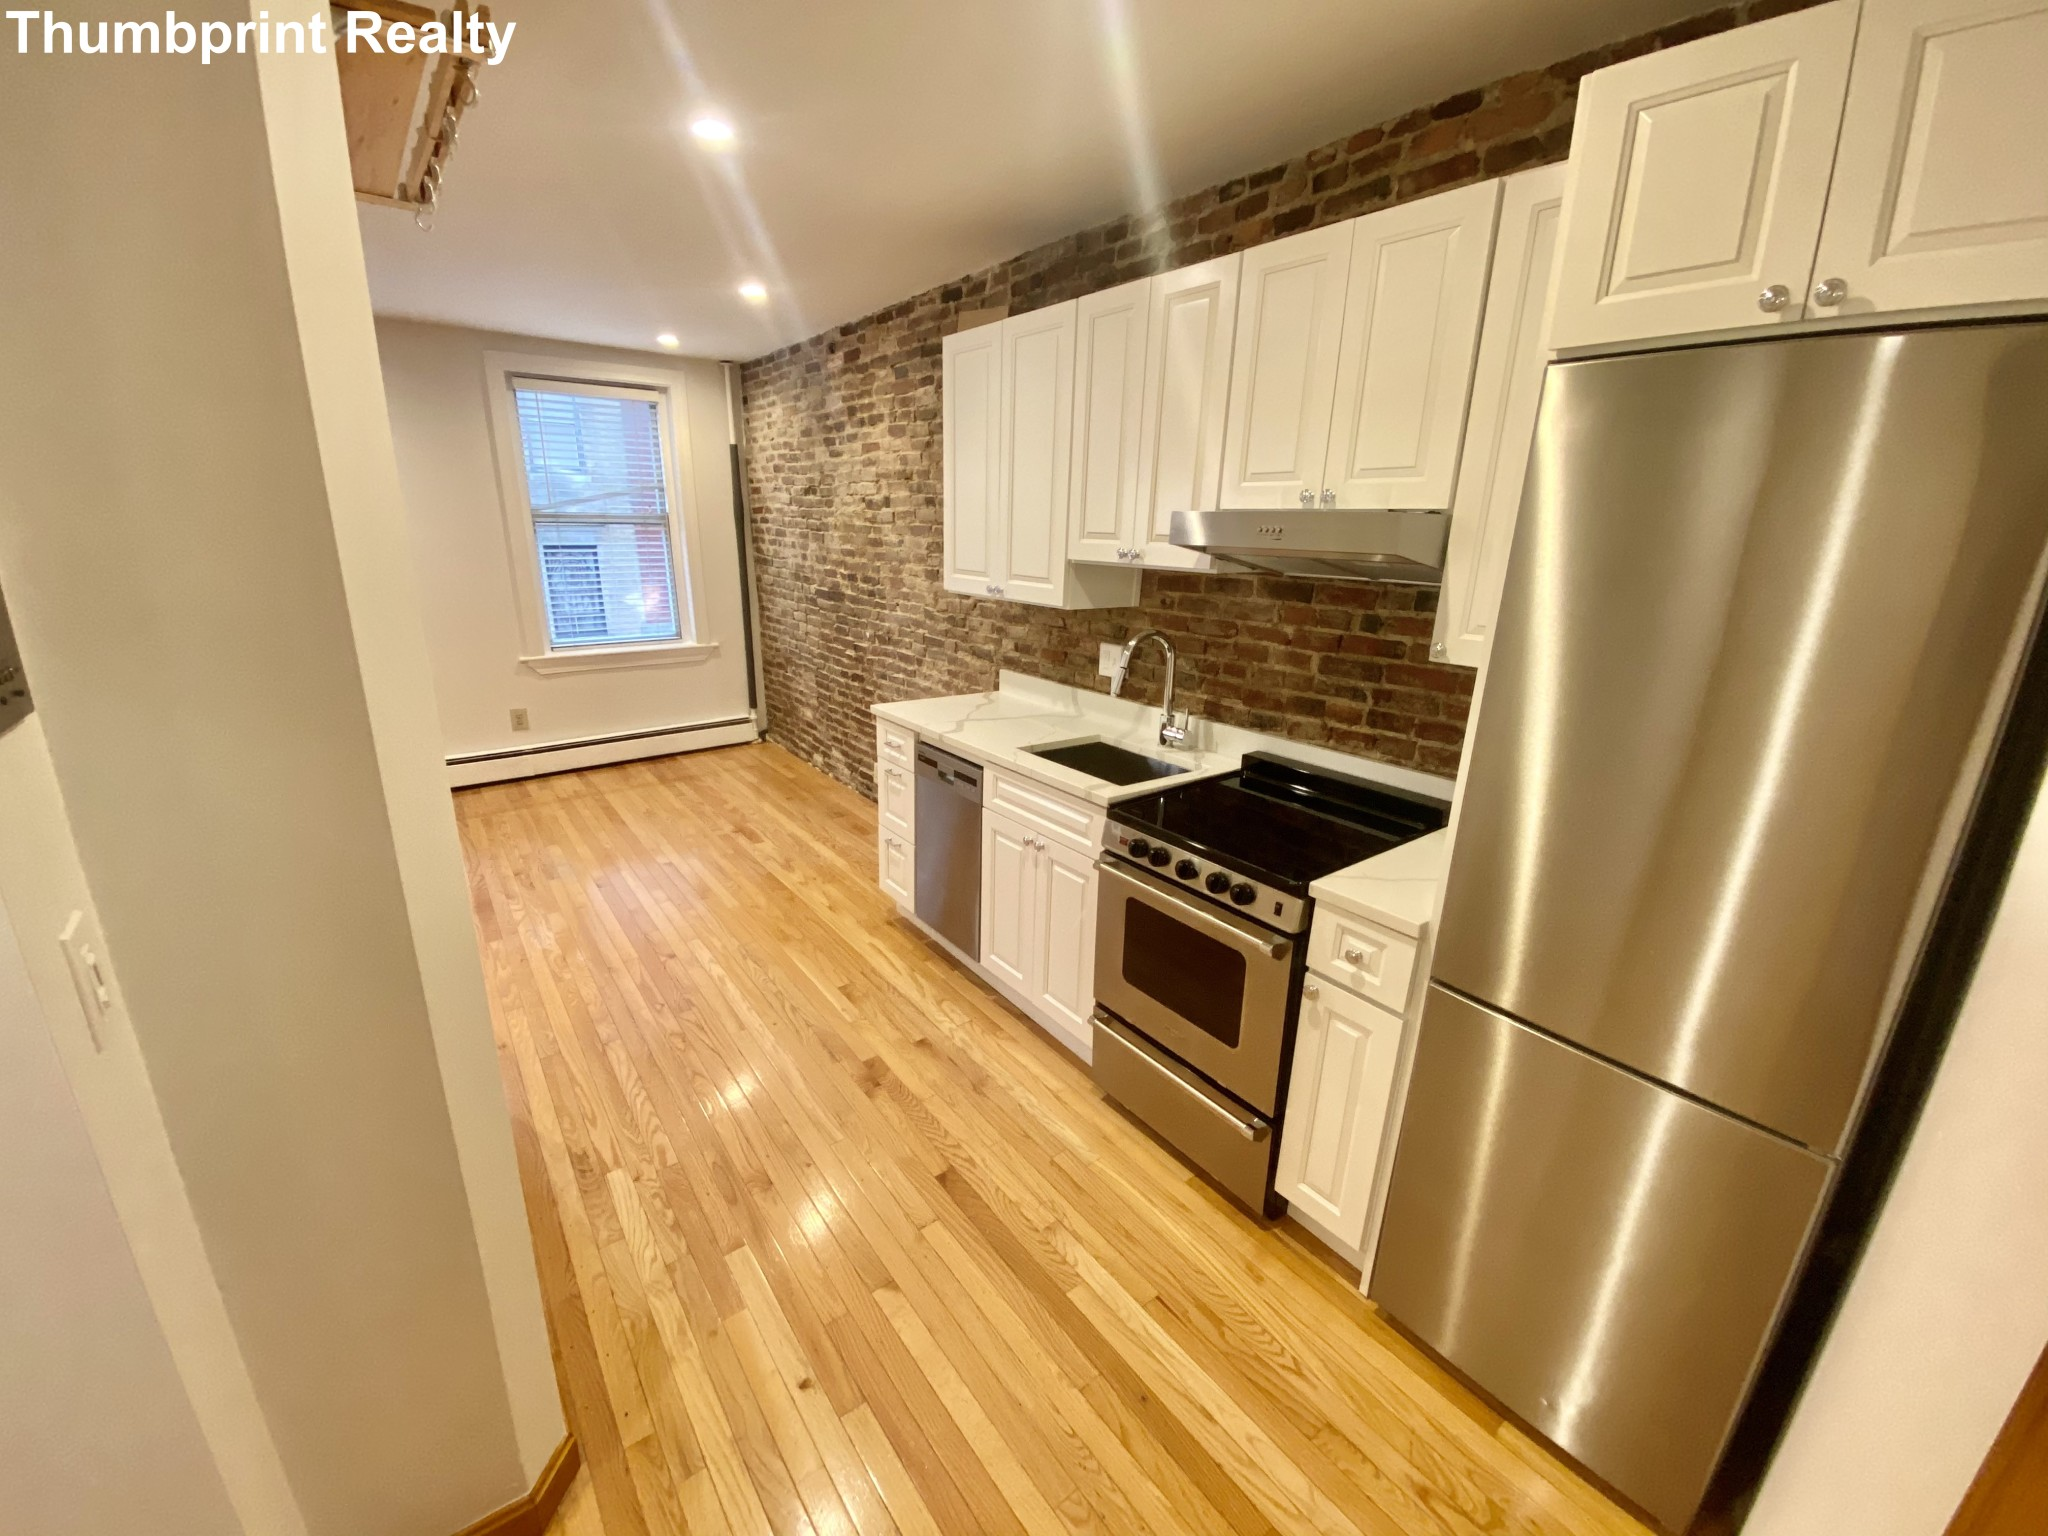 2 Beds, 1 Bath apartment in Boston, Beacon Hill for $2,400